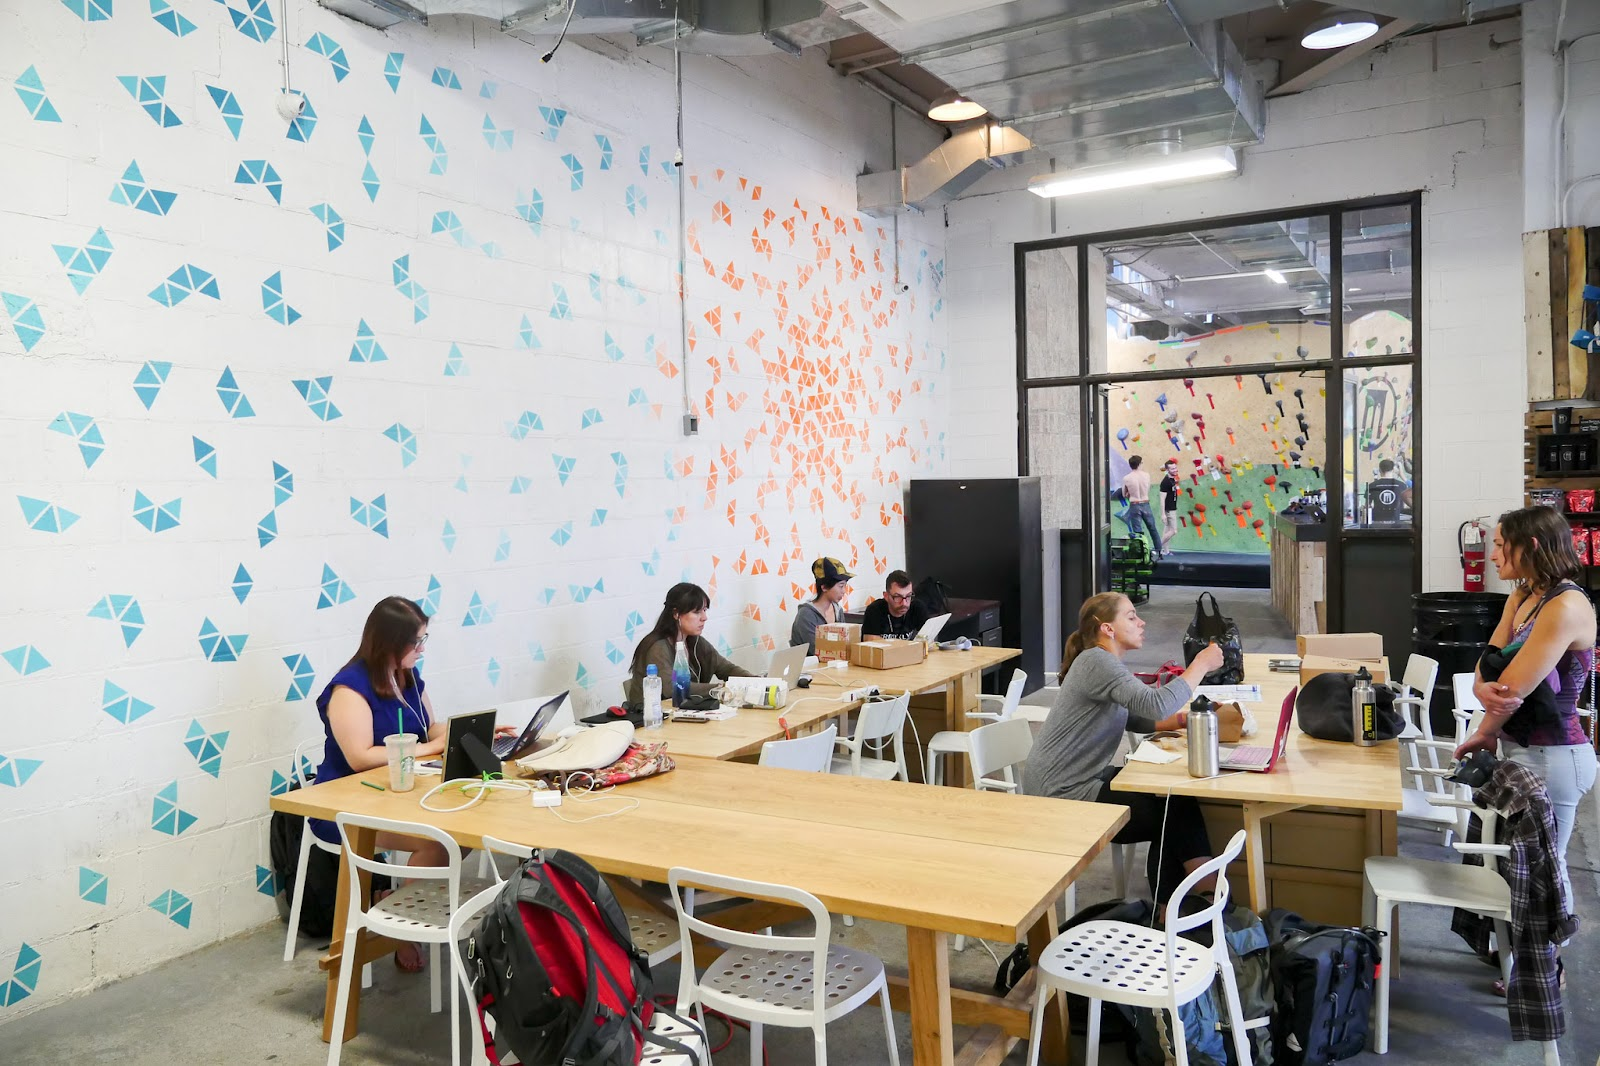 Coworking Space Brooklyn: 12 Best Spaces with Pricing, Amenities & Location[2021] 28